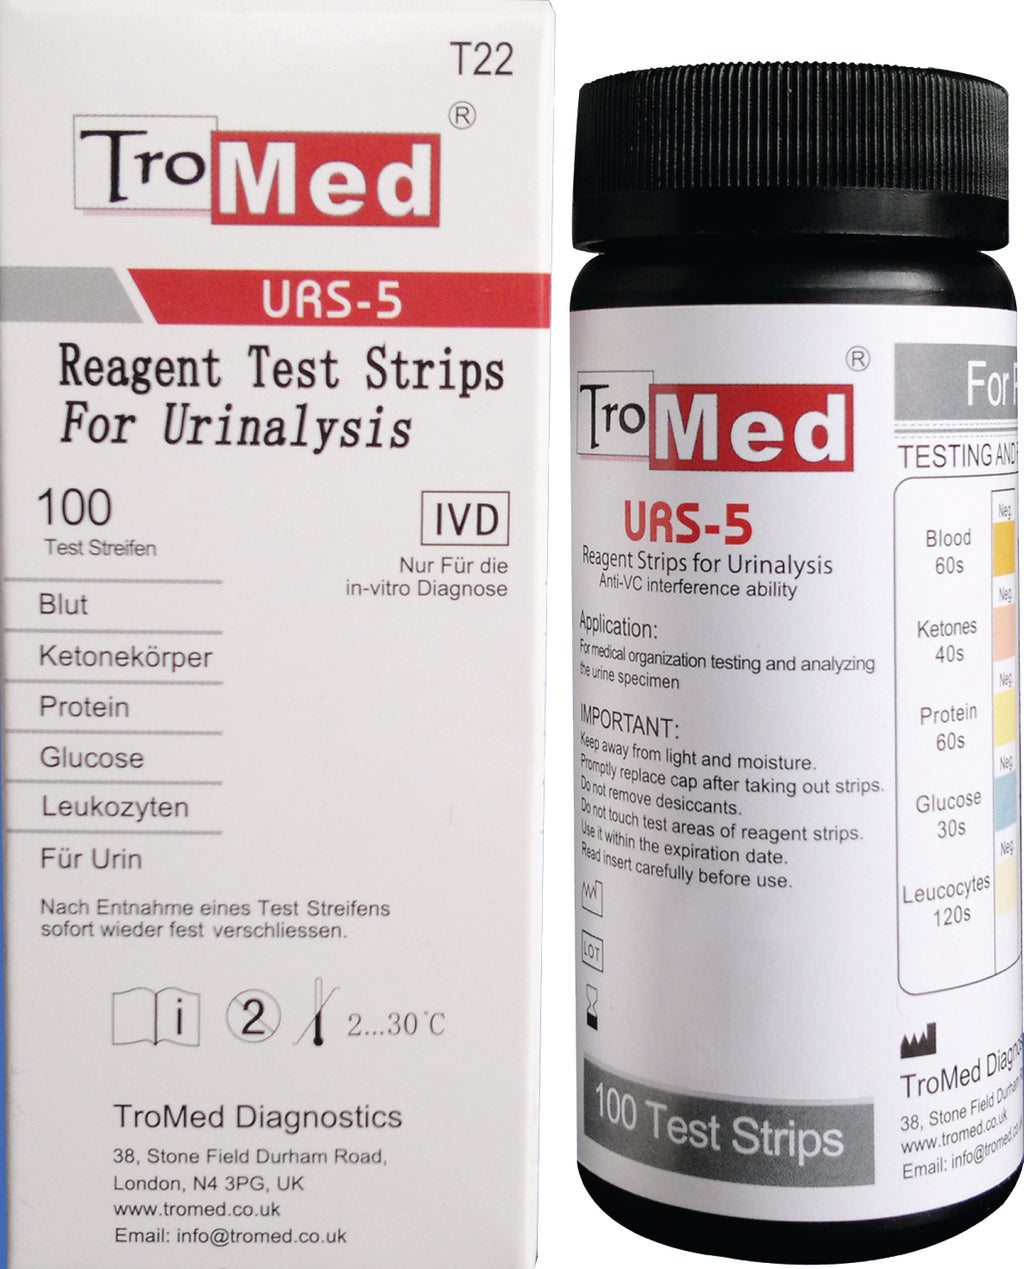 Reagent Test Strips For Urinalysis